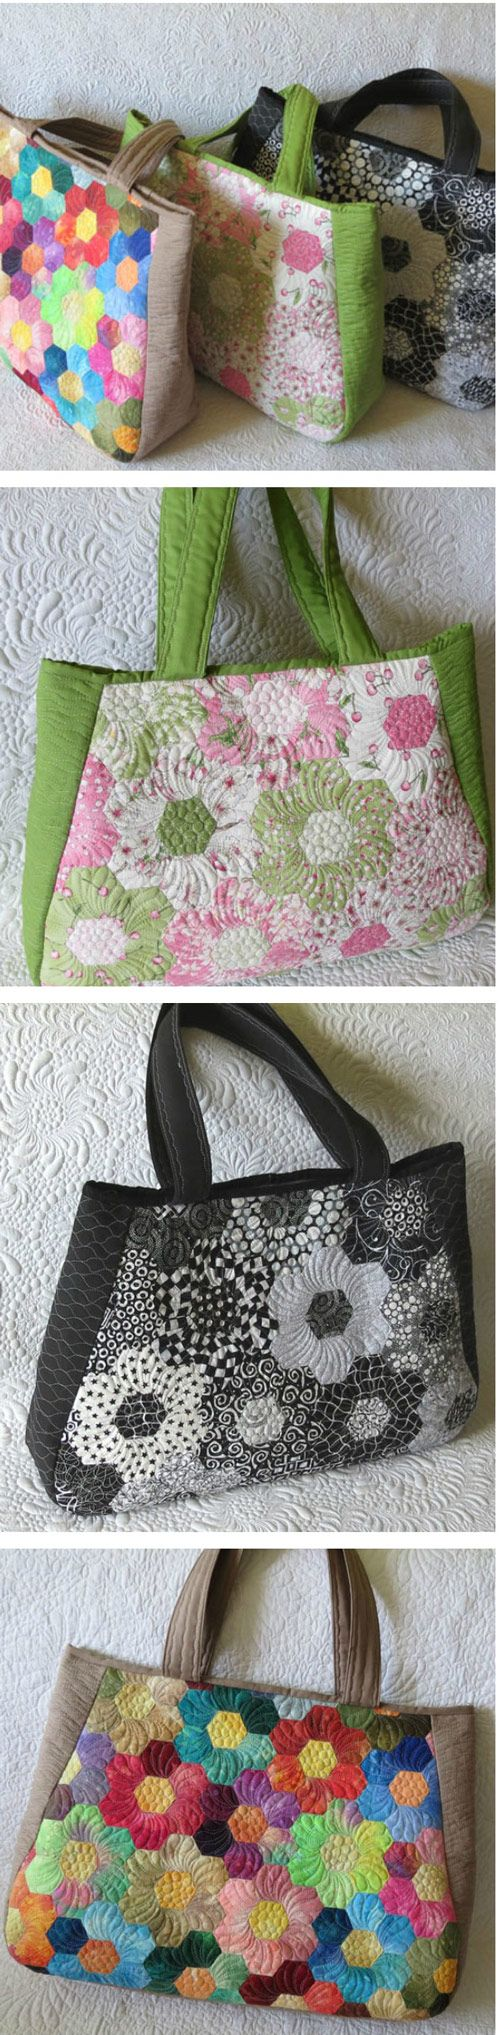 Large Quilted travel bags